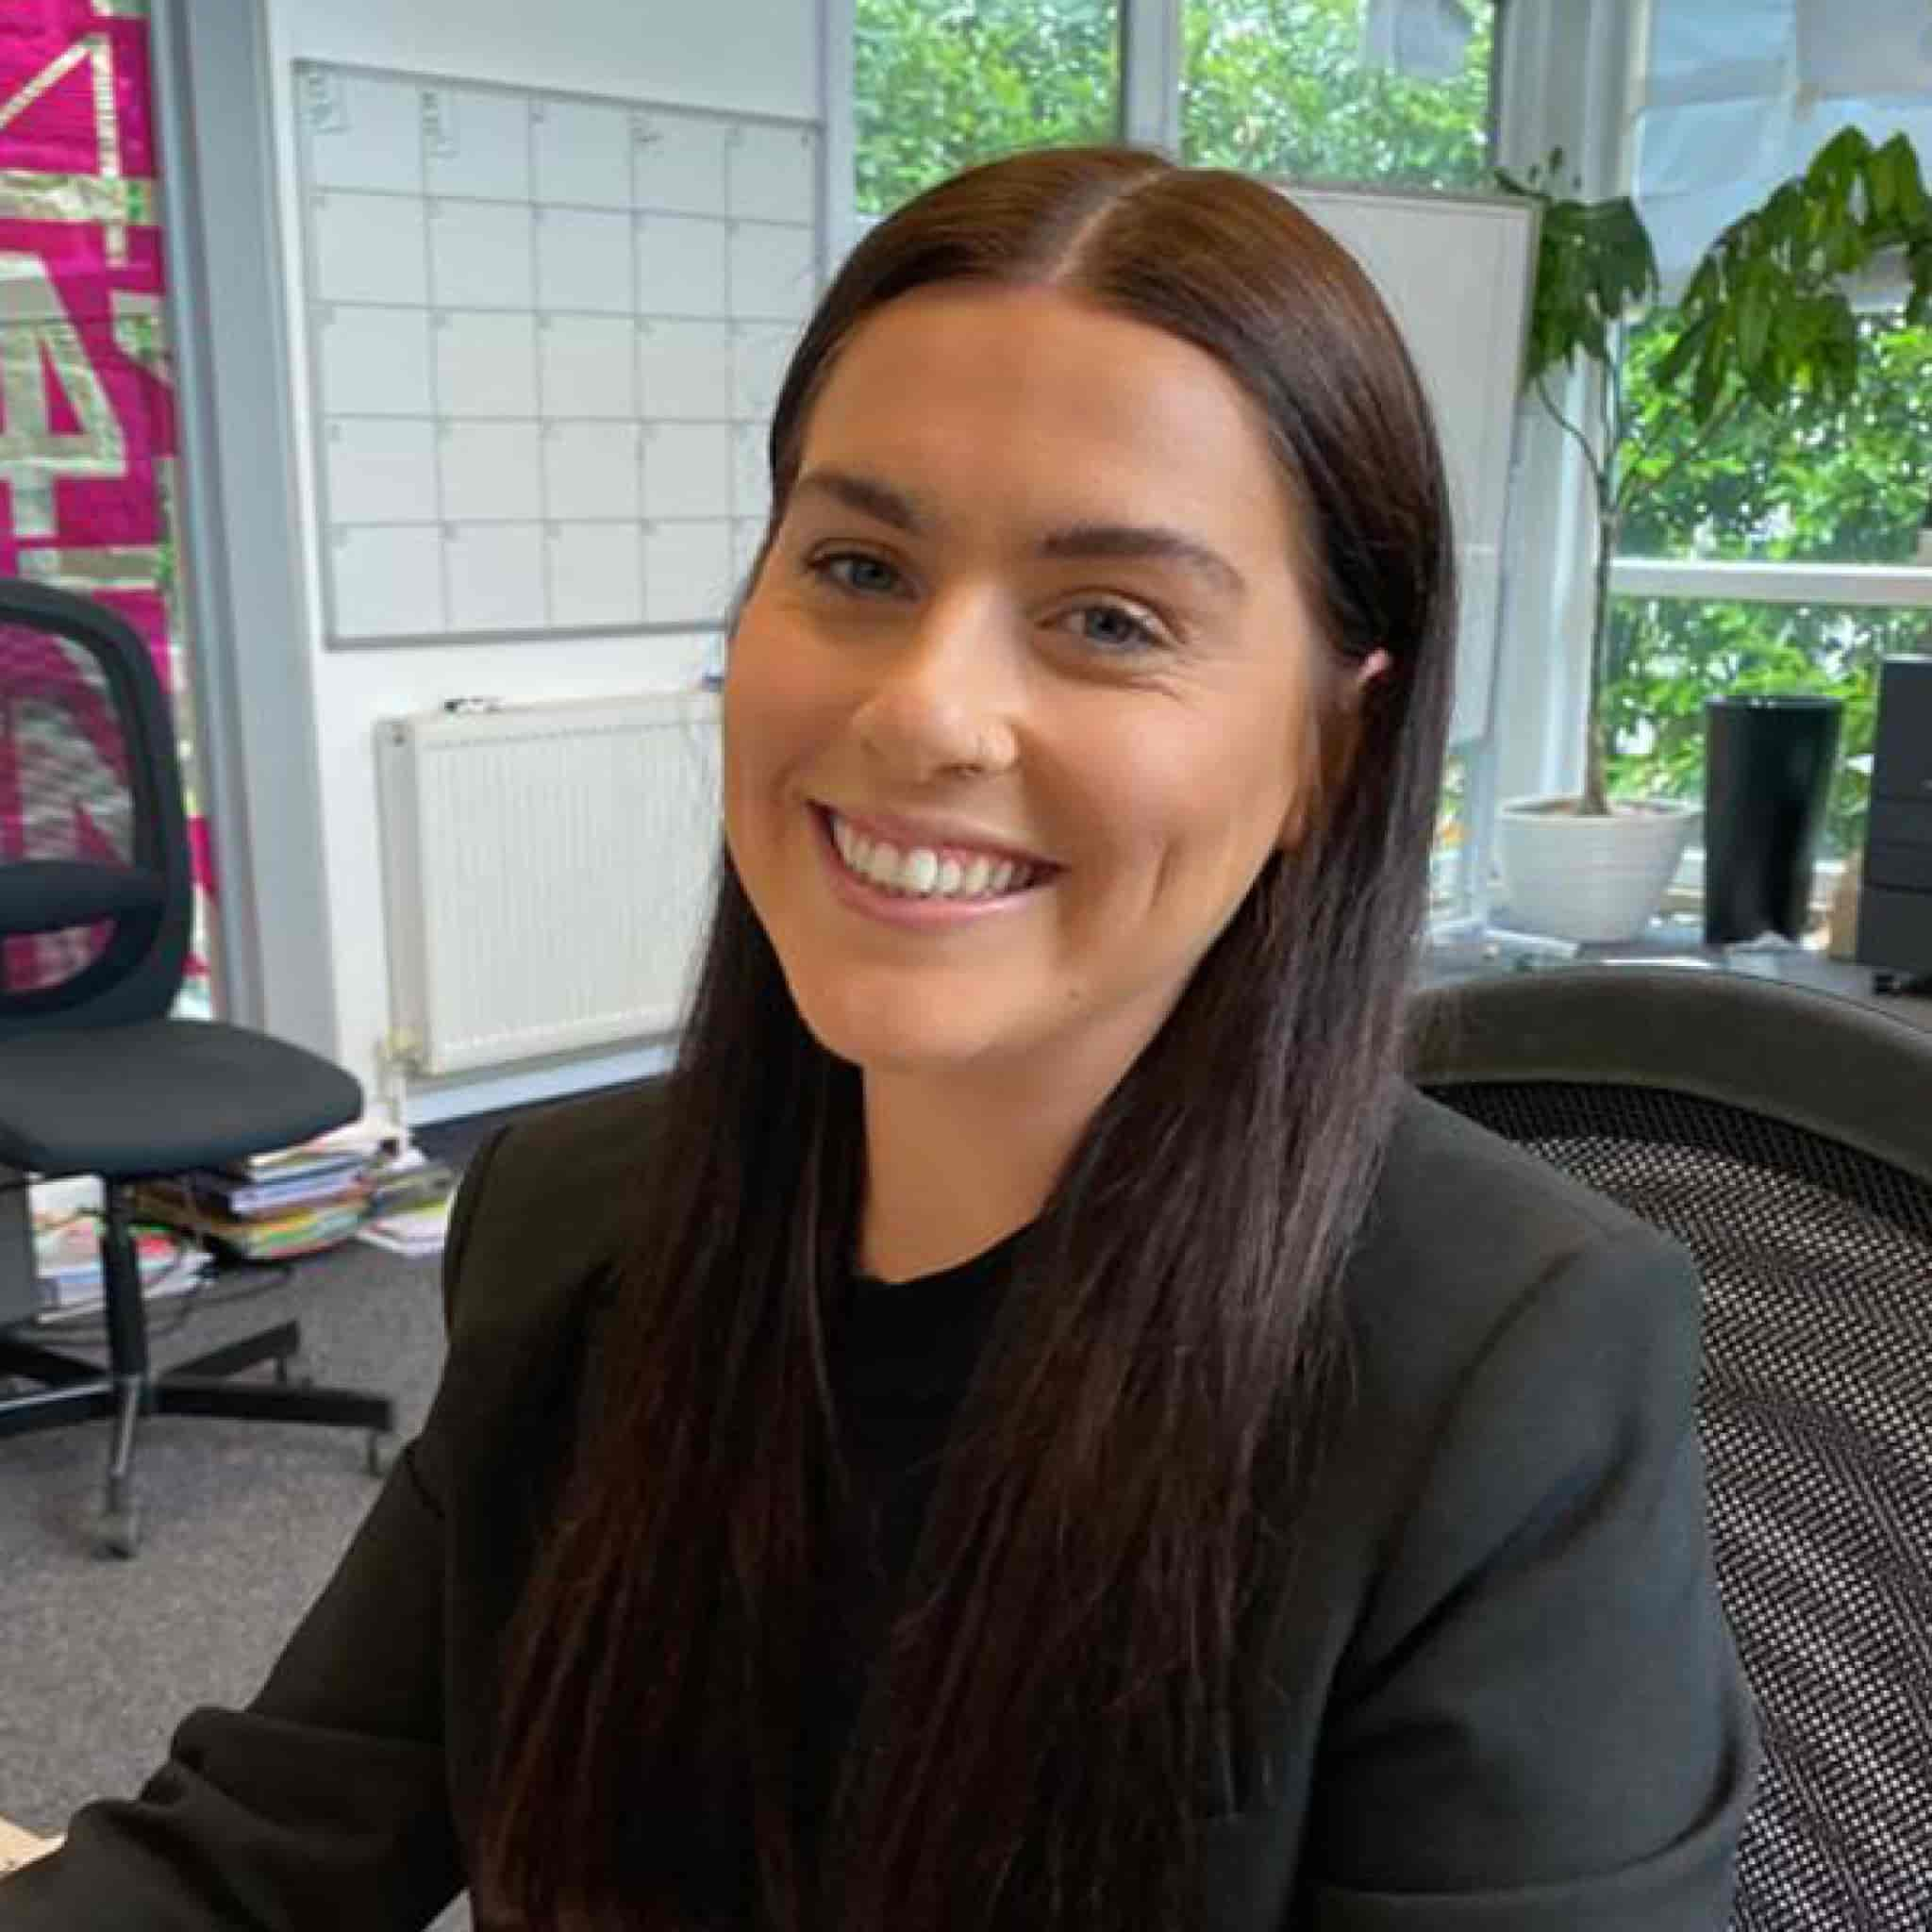 Four welcomes its very first Marketing Executive to the team